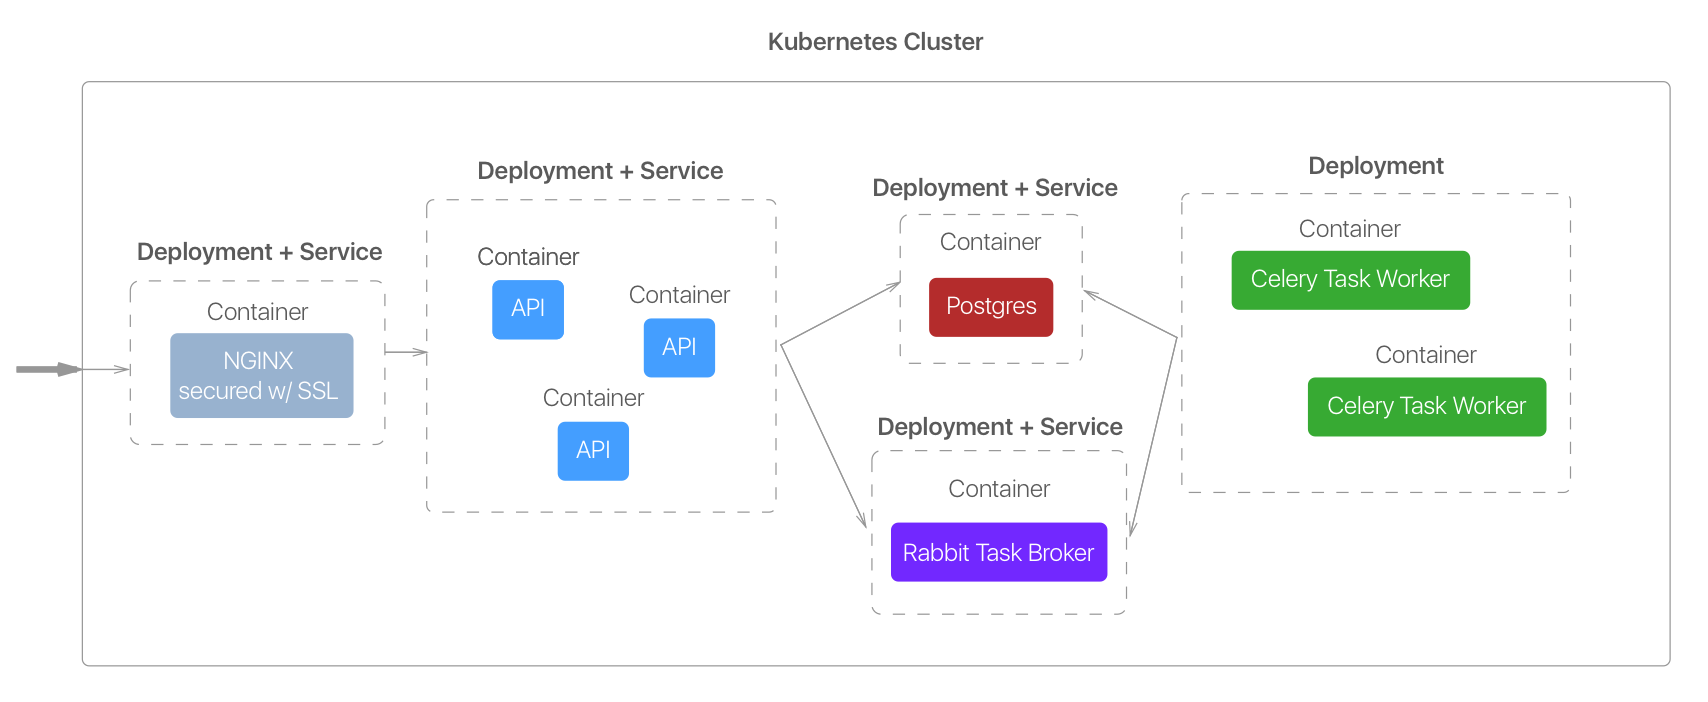 A Survival Guide for Containerizing your Infrastructure